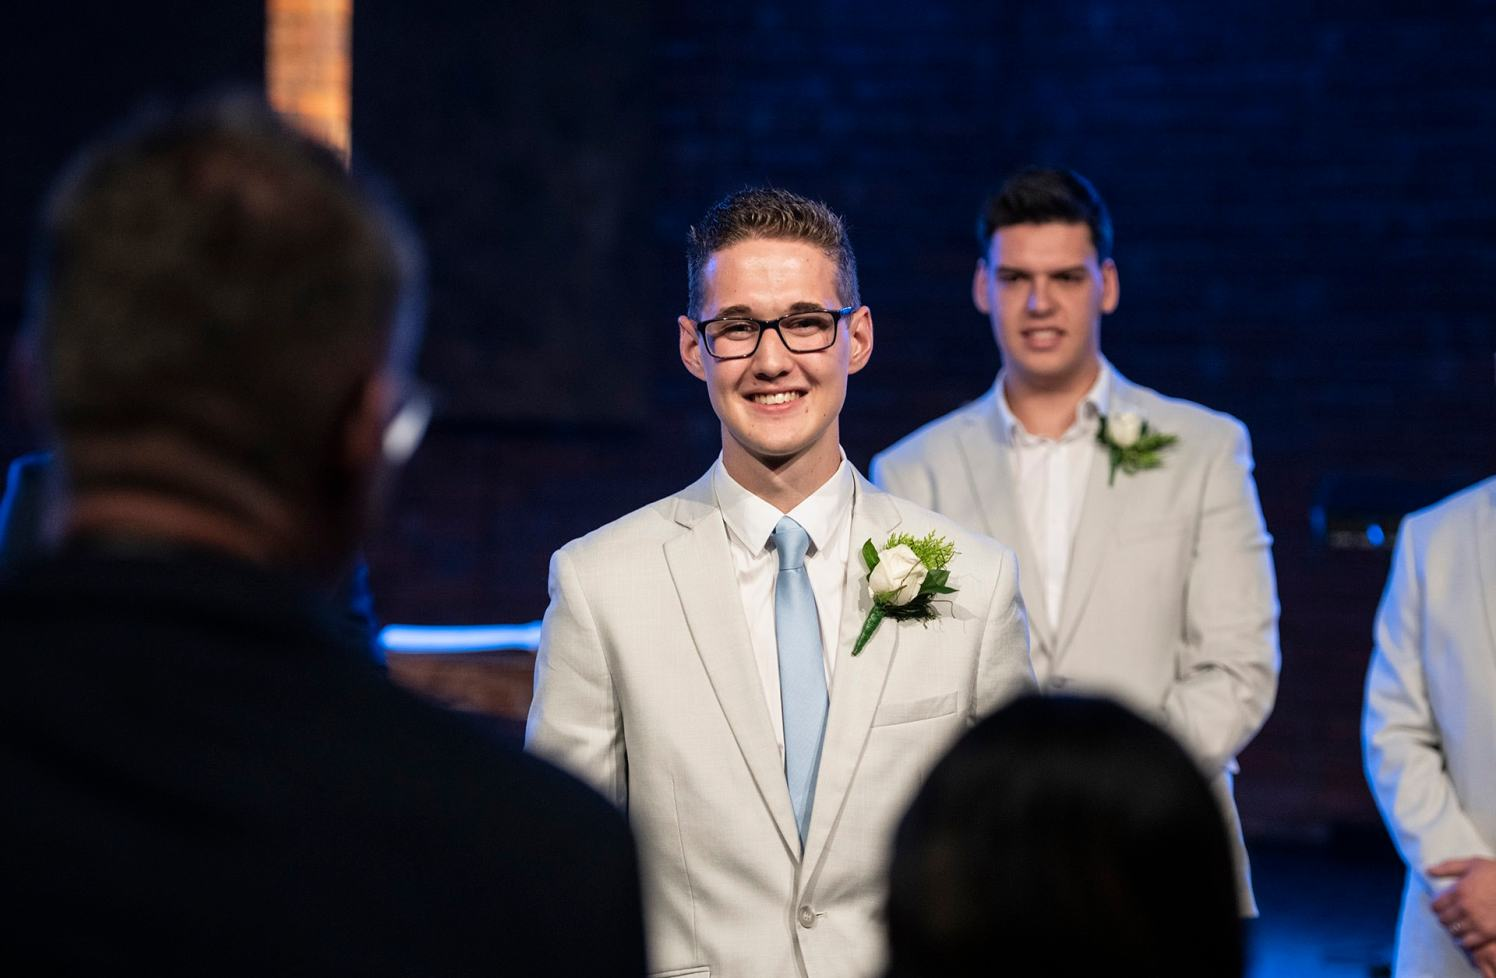 Grooms first look as she walks towards him